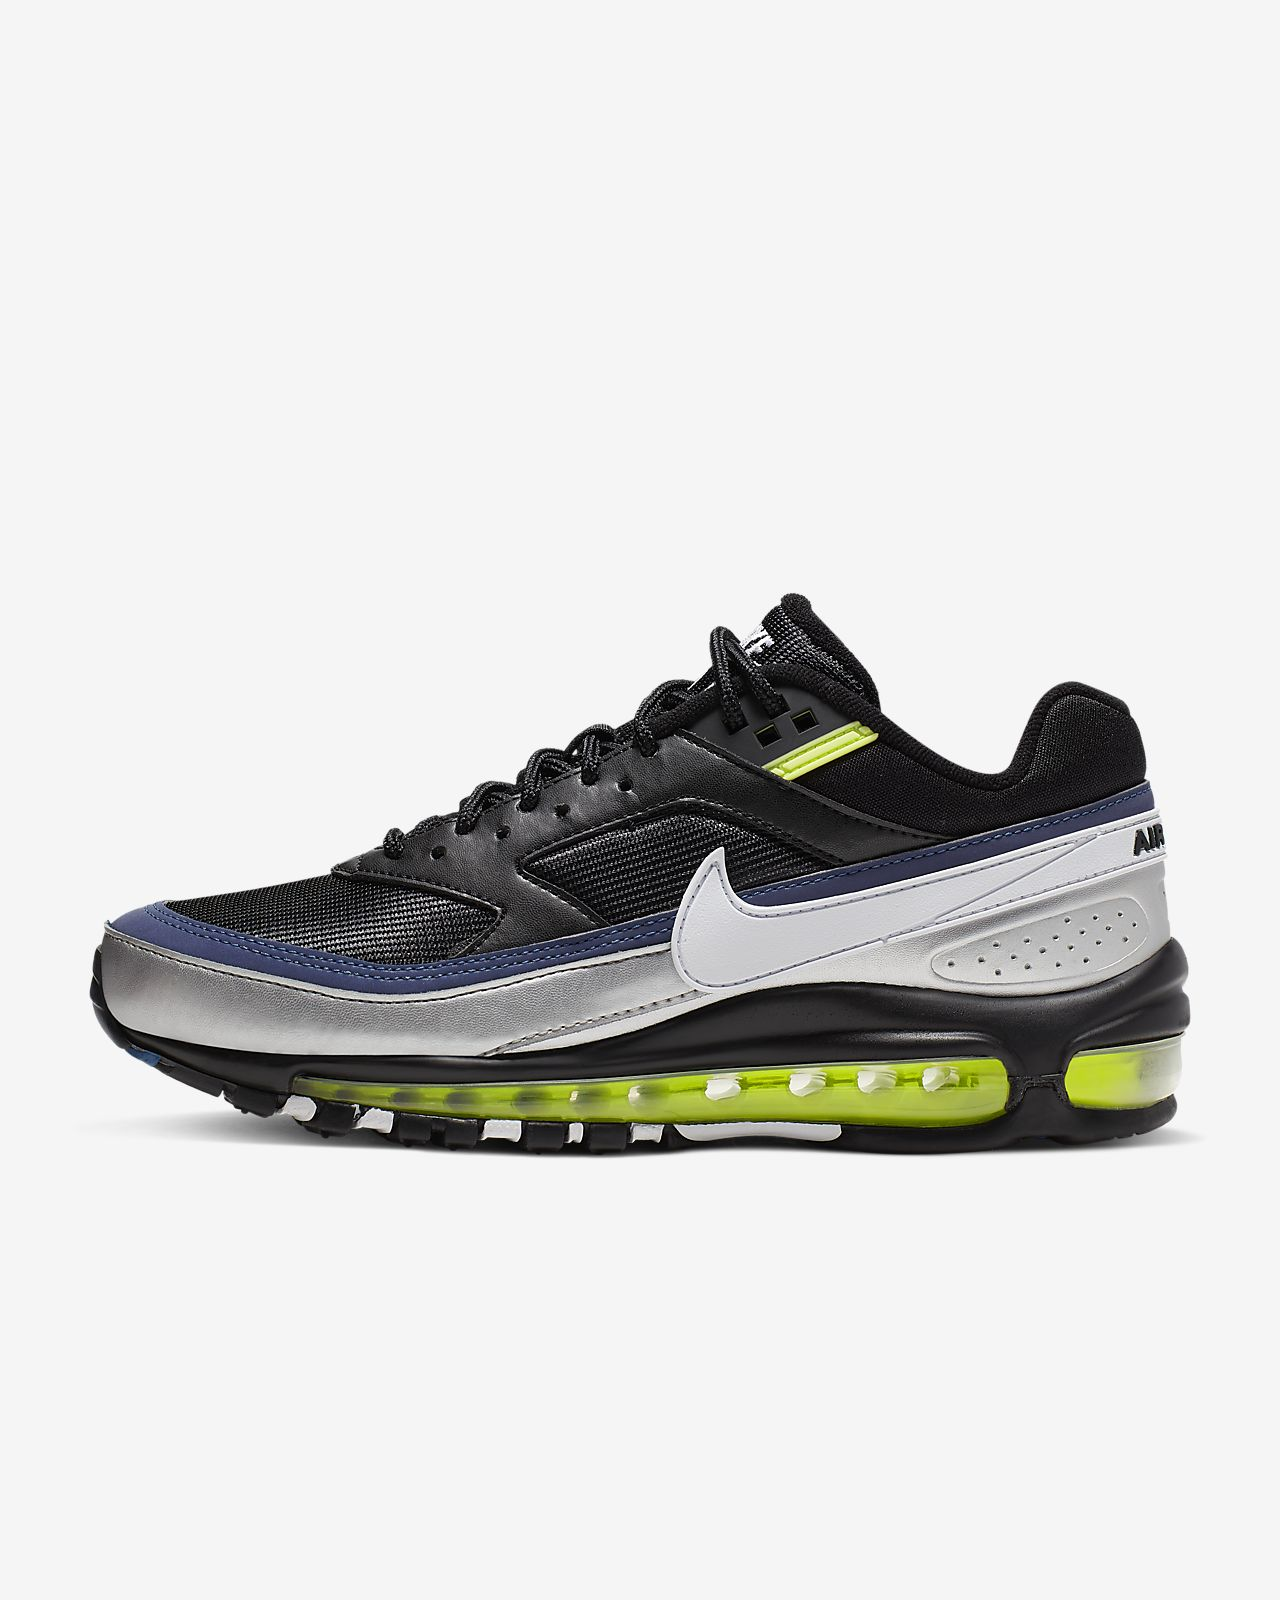 uk availability 1e7ca 4f643 Nike Air Max 97 BW